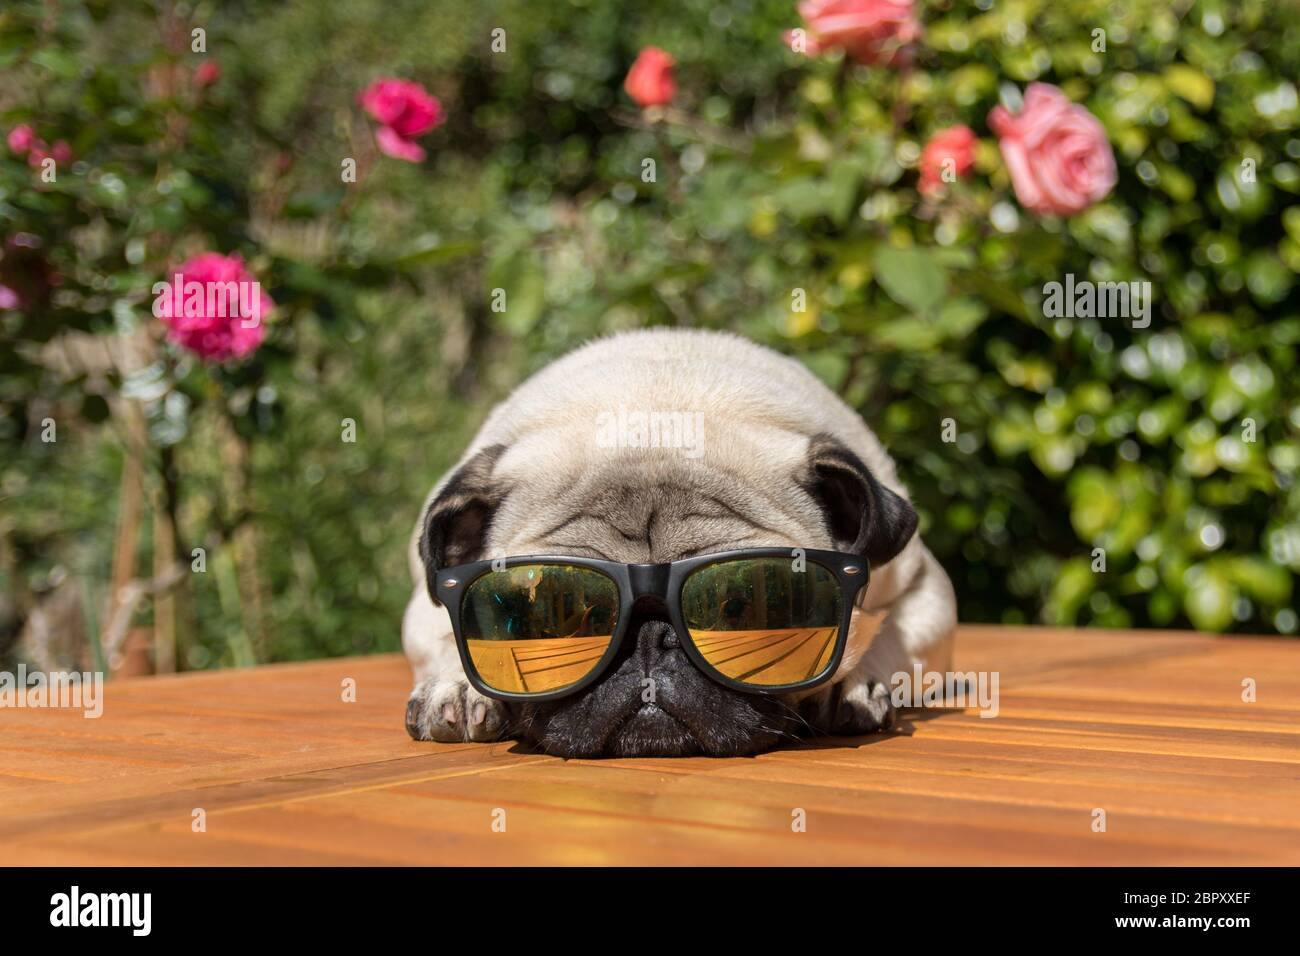 Wadebridge, Cornwall, UK. 20th May 2020. UK Weather. Dennis the Pug out in his back garden early this morning making the most of the sunshine before it gets too hot. It is forecast to be the hottest day of the year so far in the UK.  Credit Simon Maycock / Alamy Live News. Stock Photo